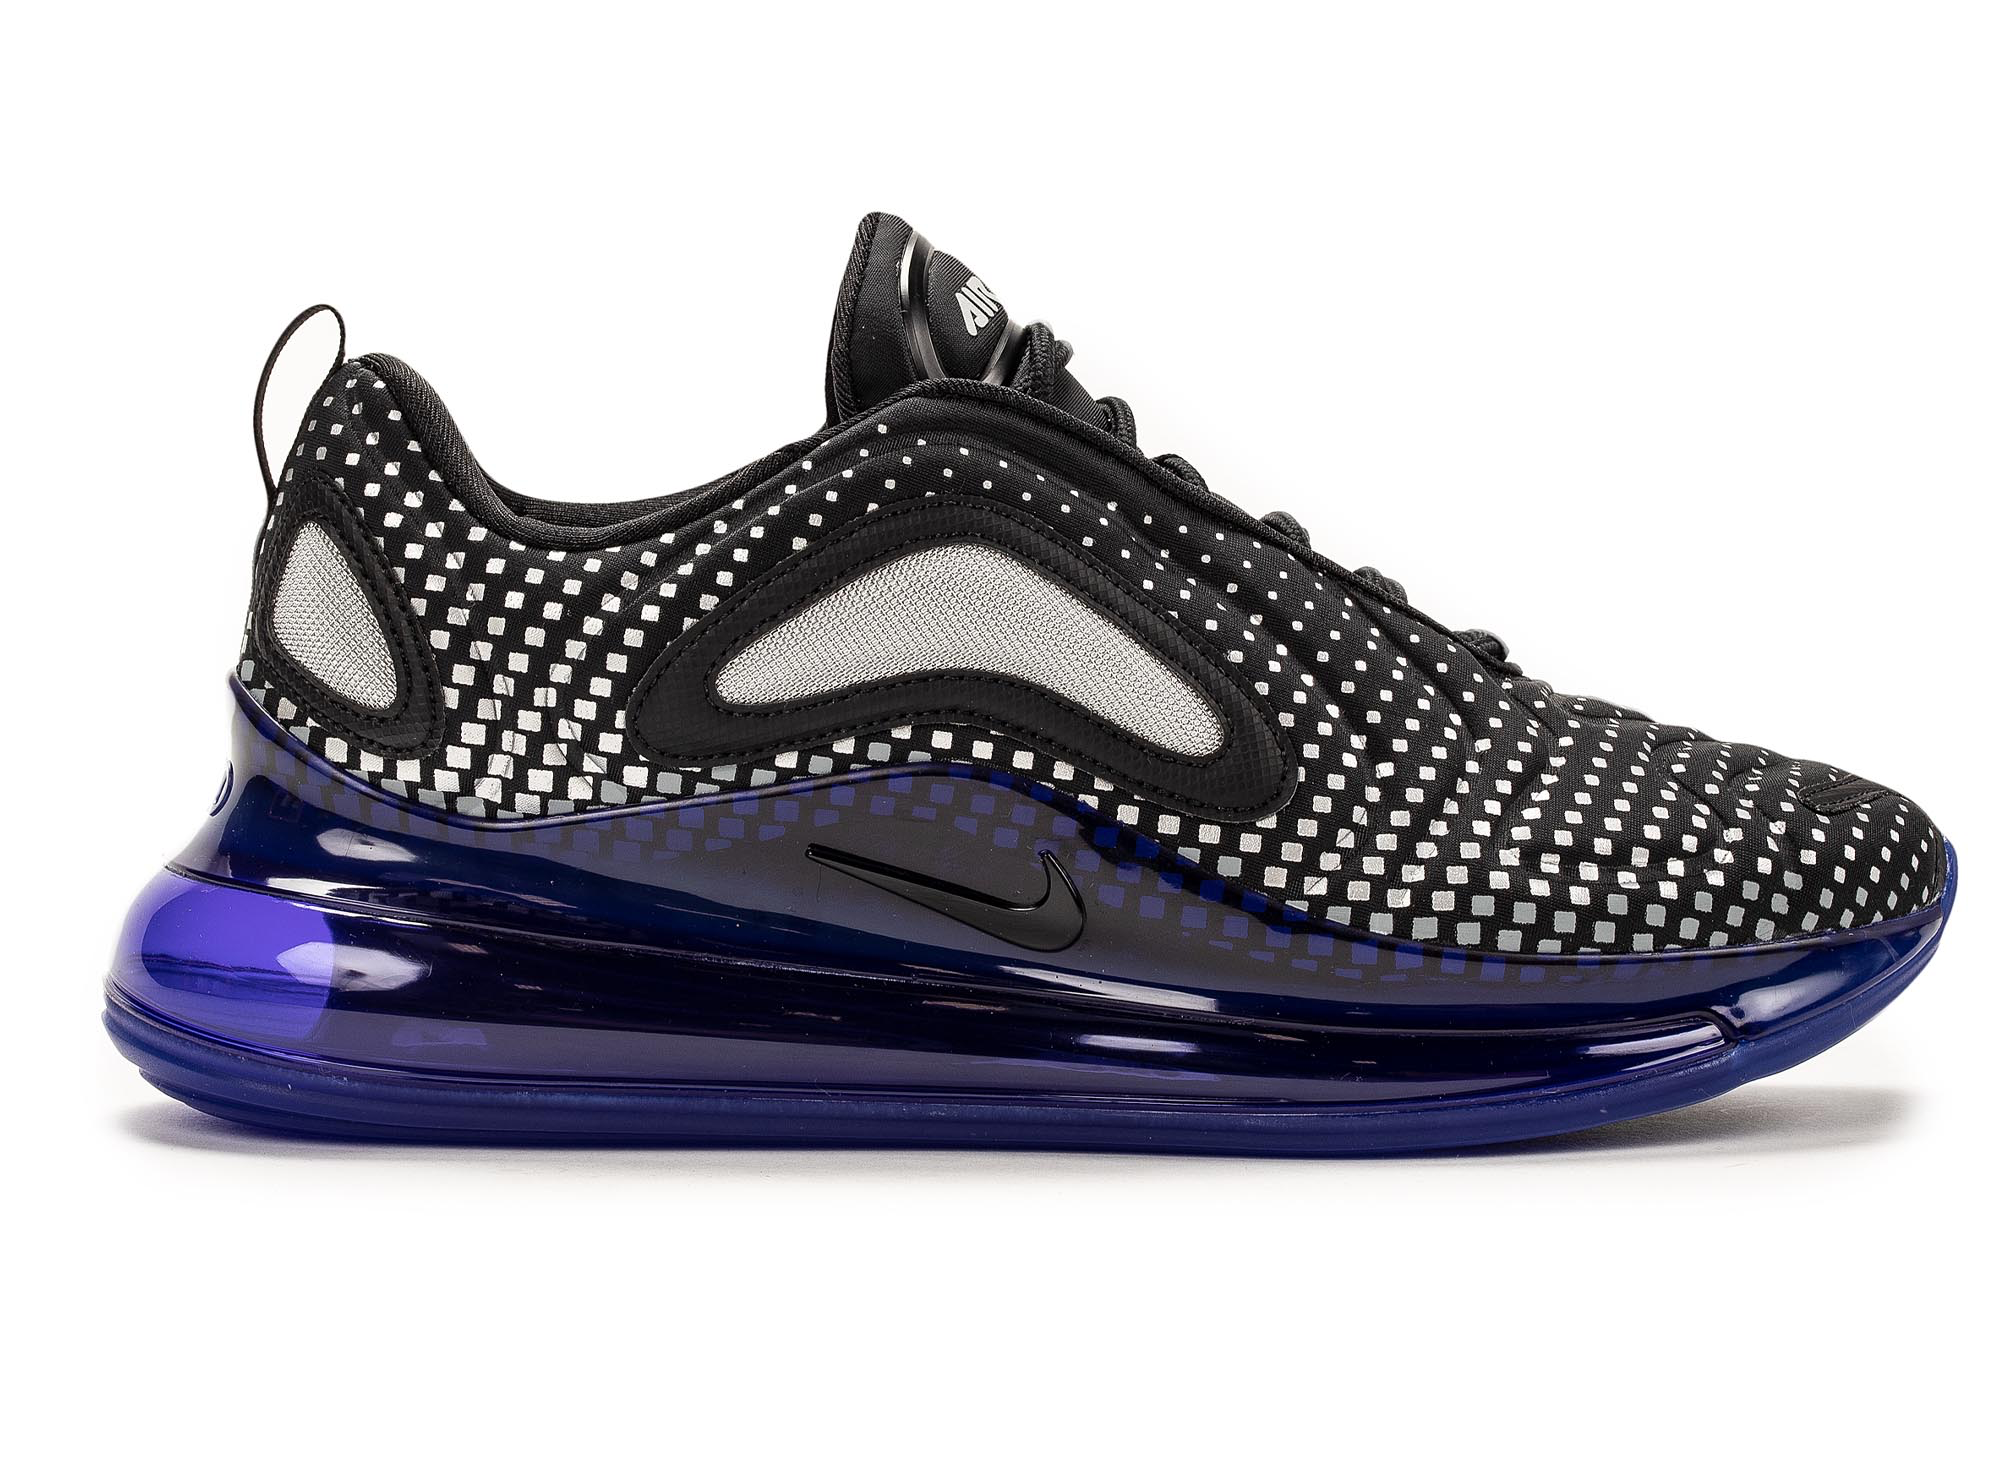 Nike Air Max 720 'Black/Racer Blue' - Oneness Boutique